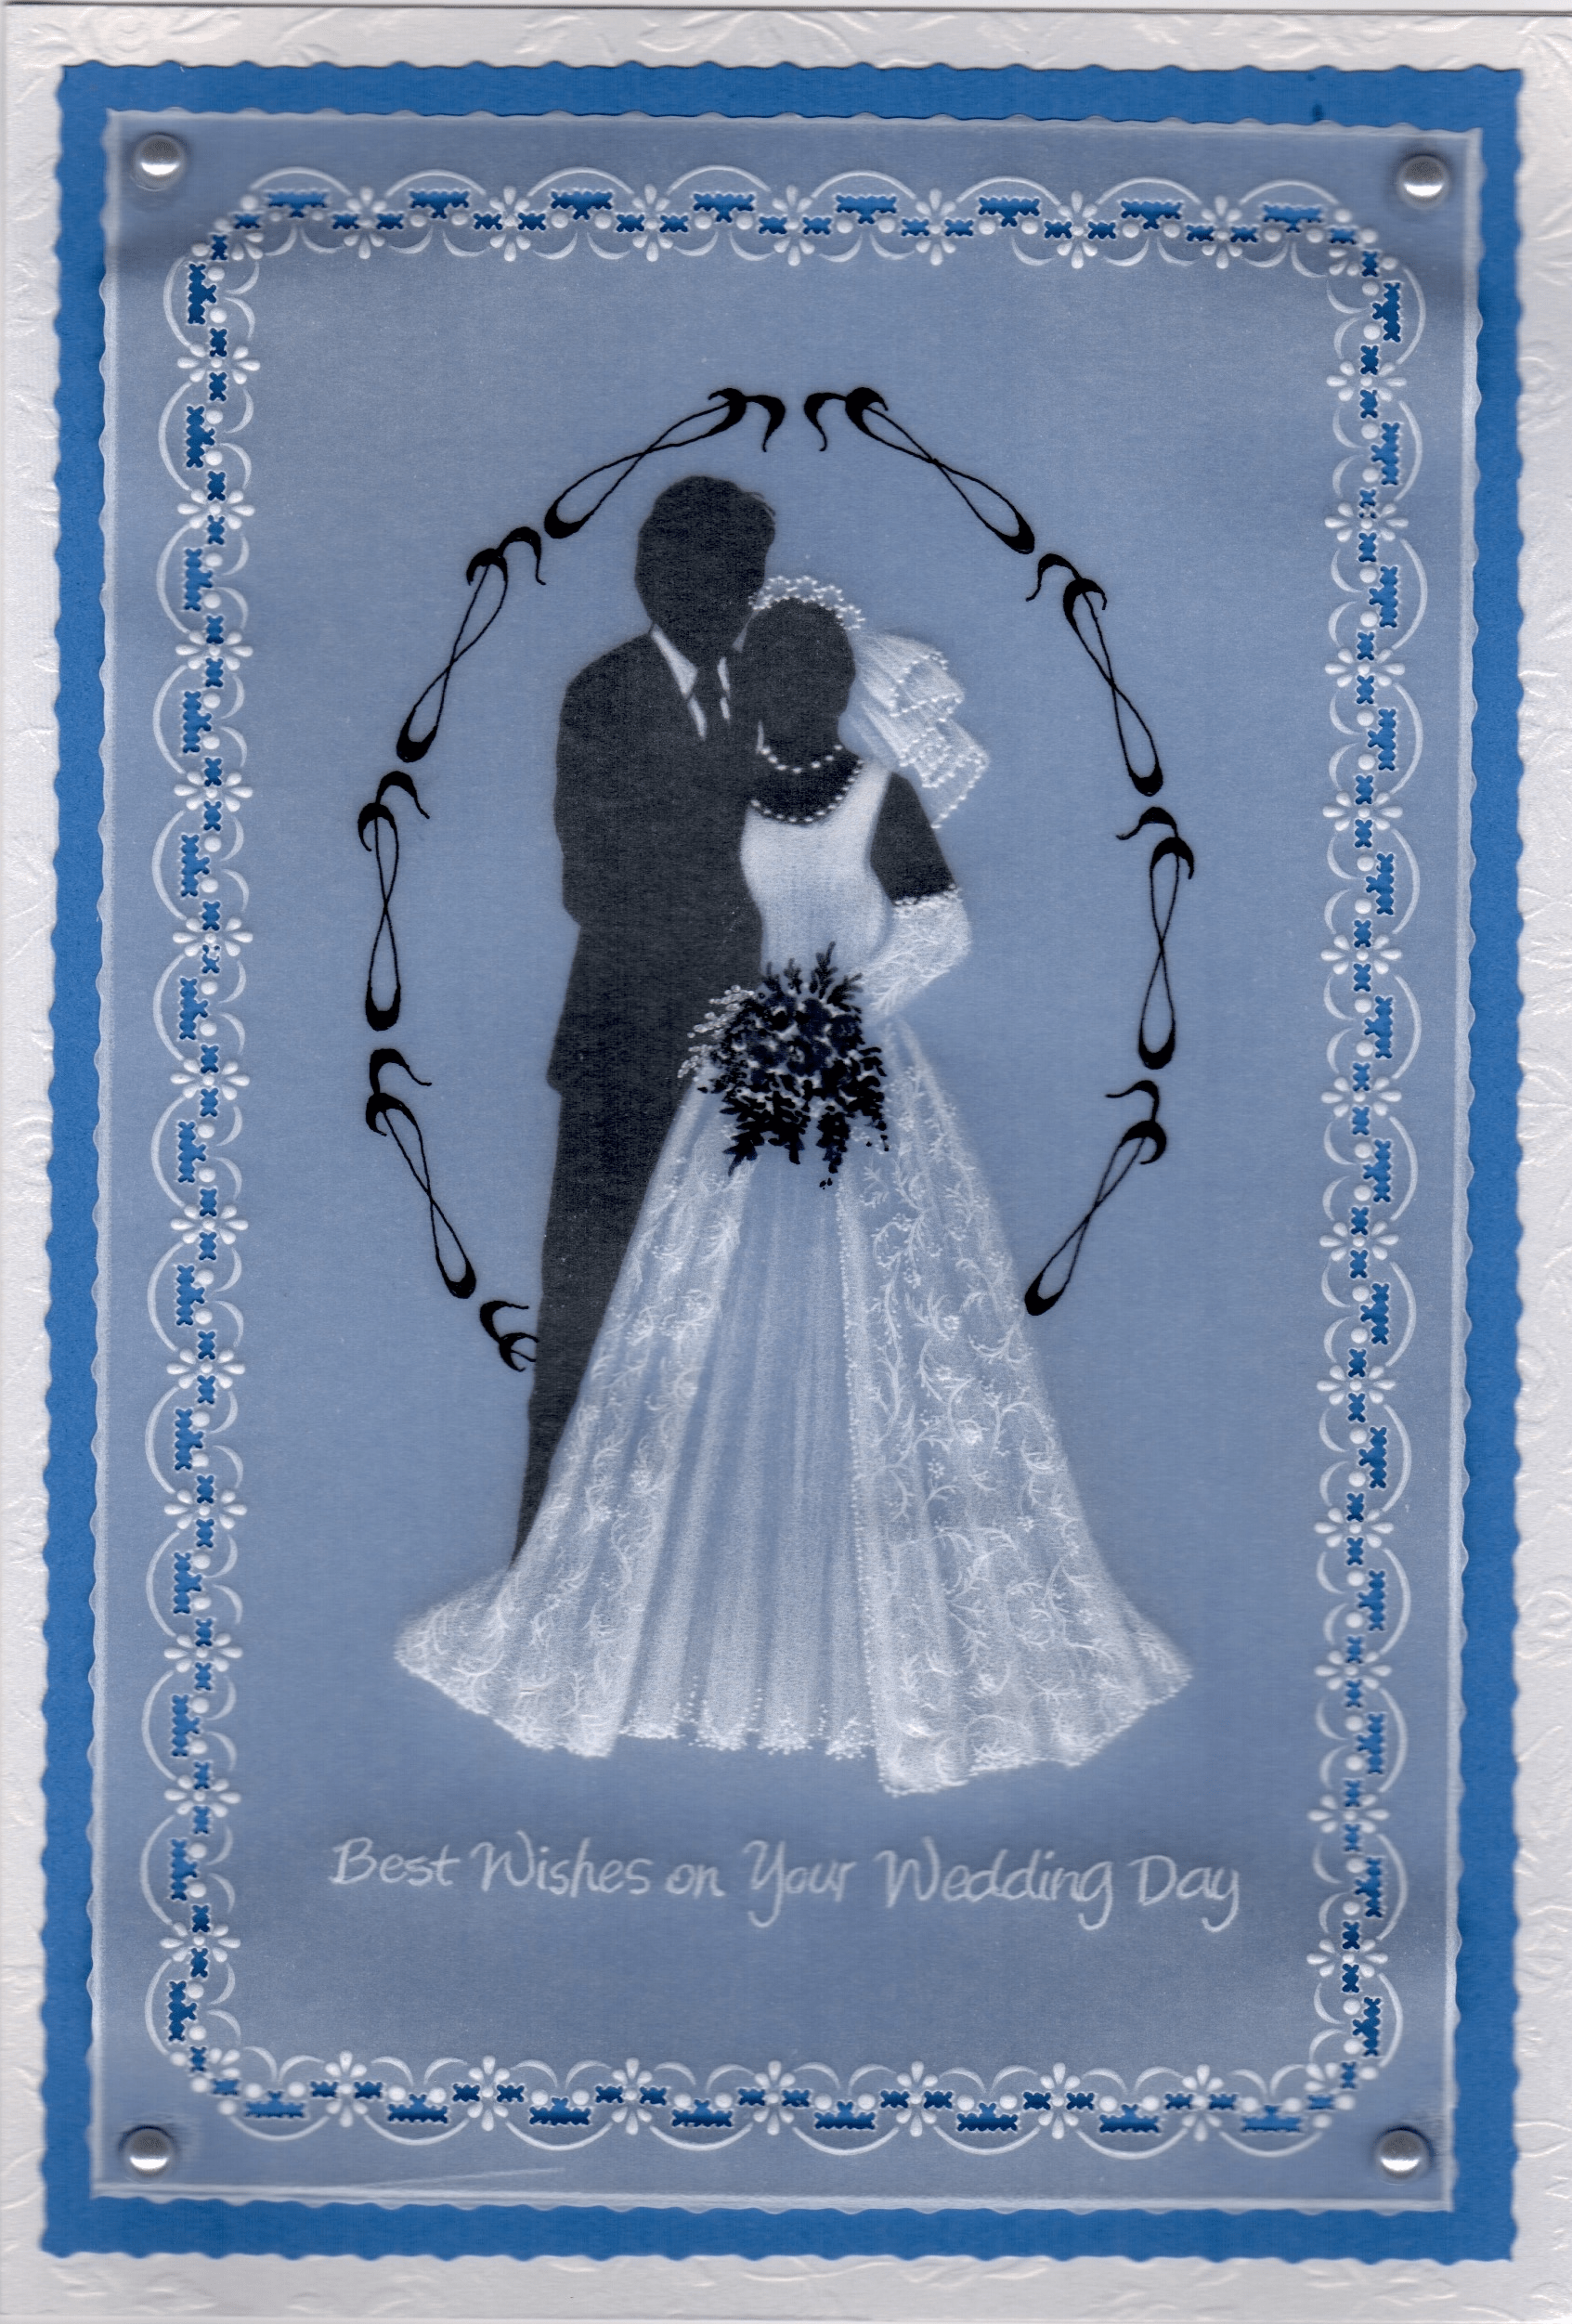 New Wedding Card Design